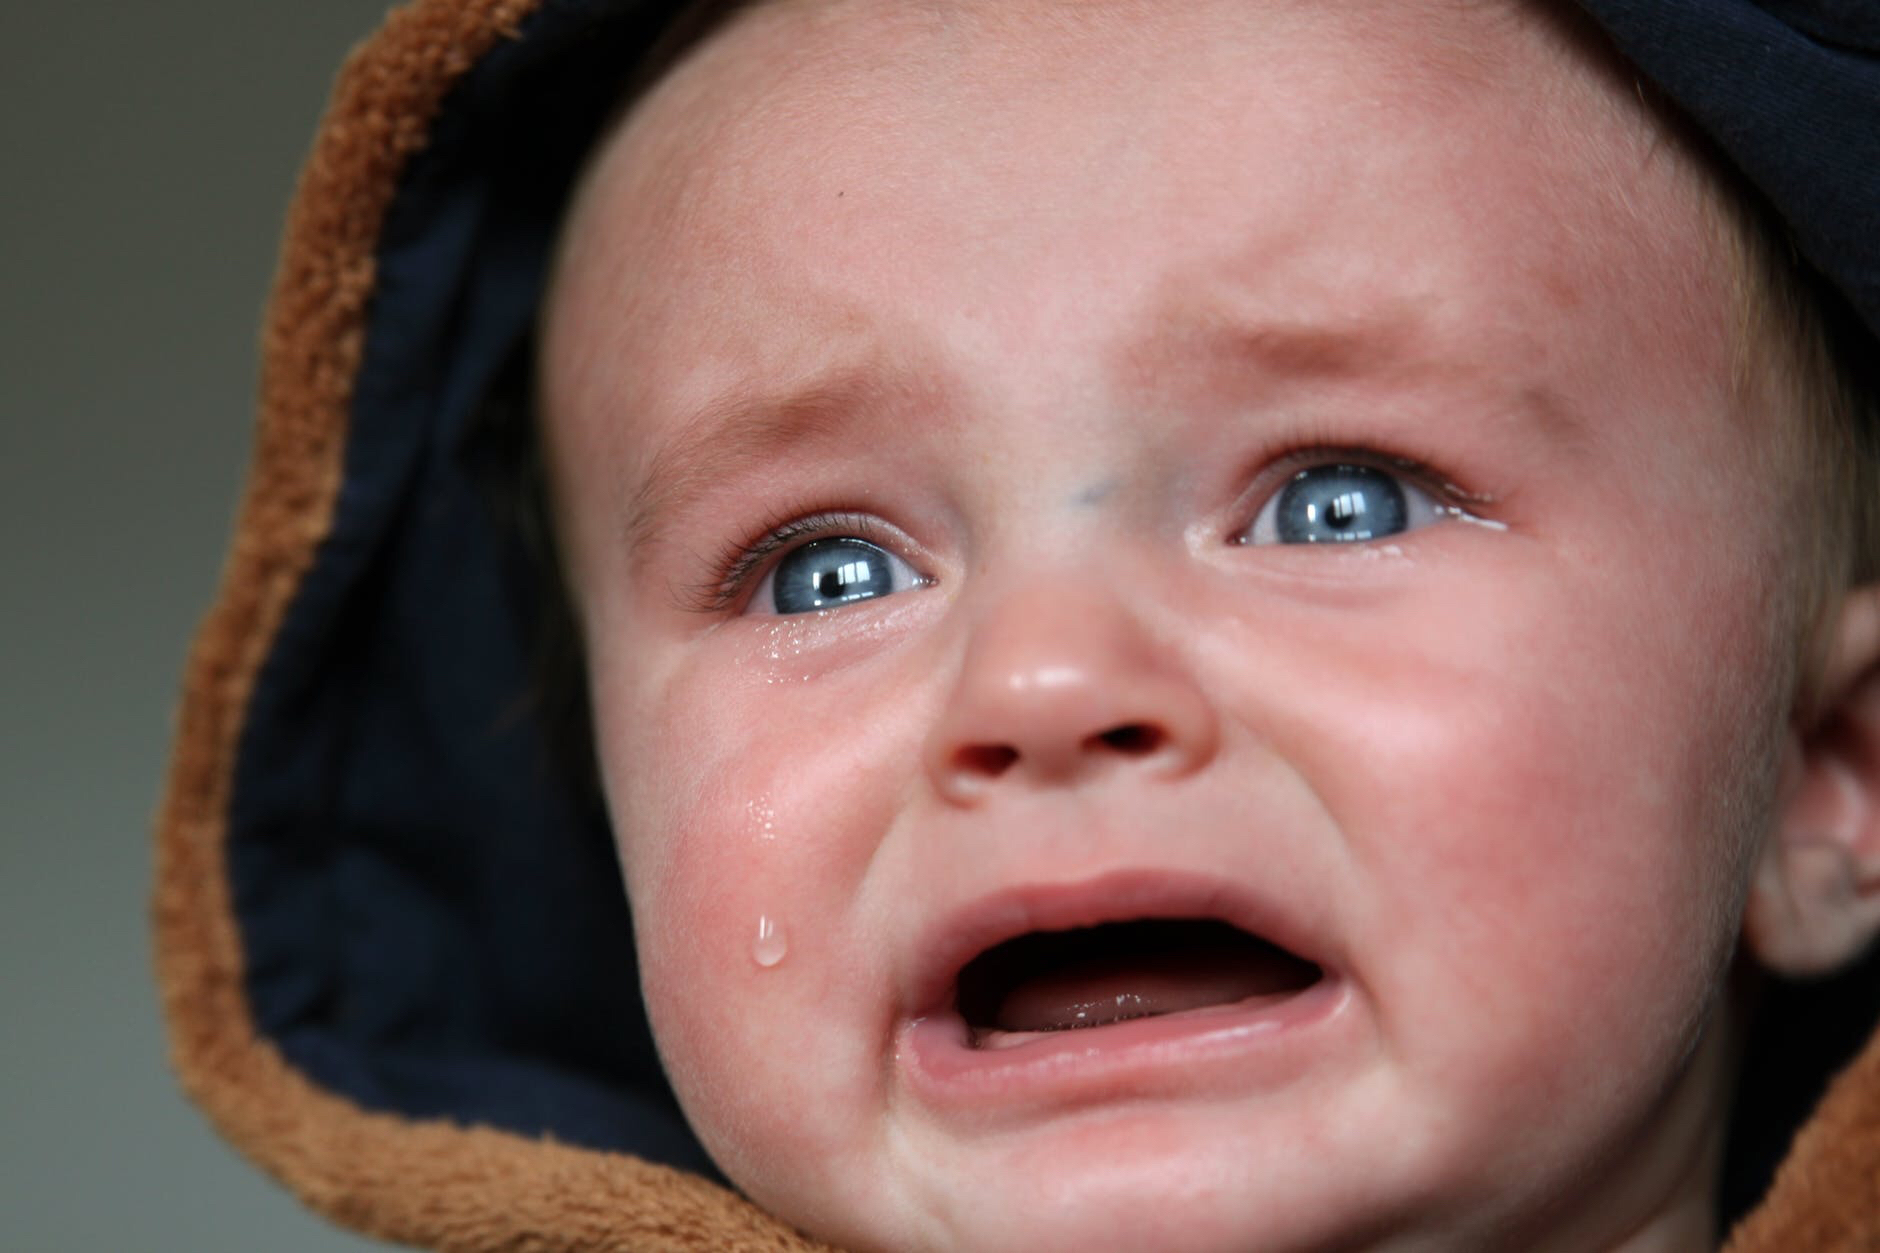 a crying baby